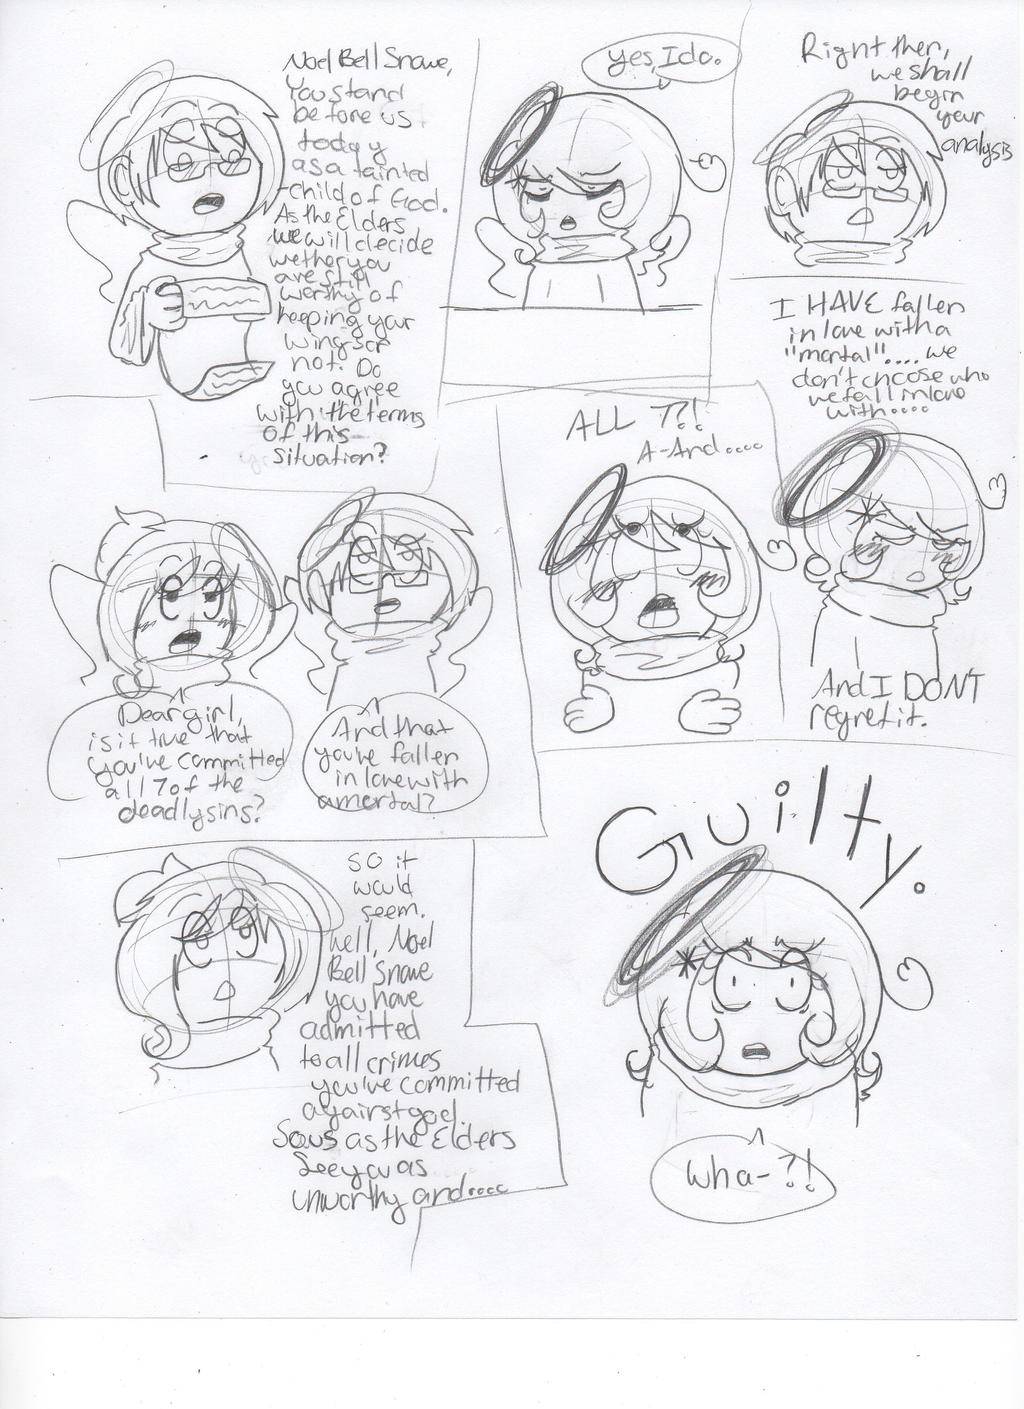 Crappy comic: You are unworthy. by Ask--Miki